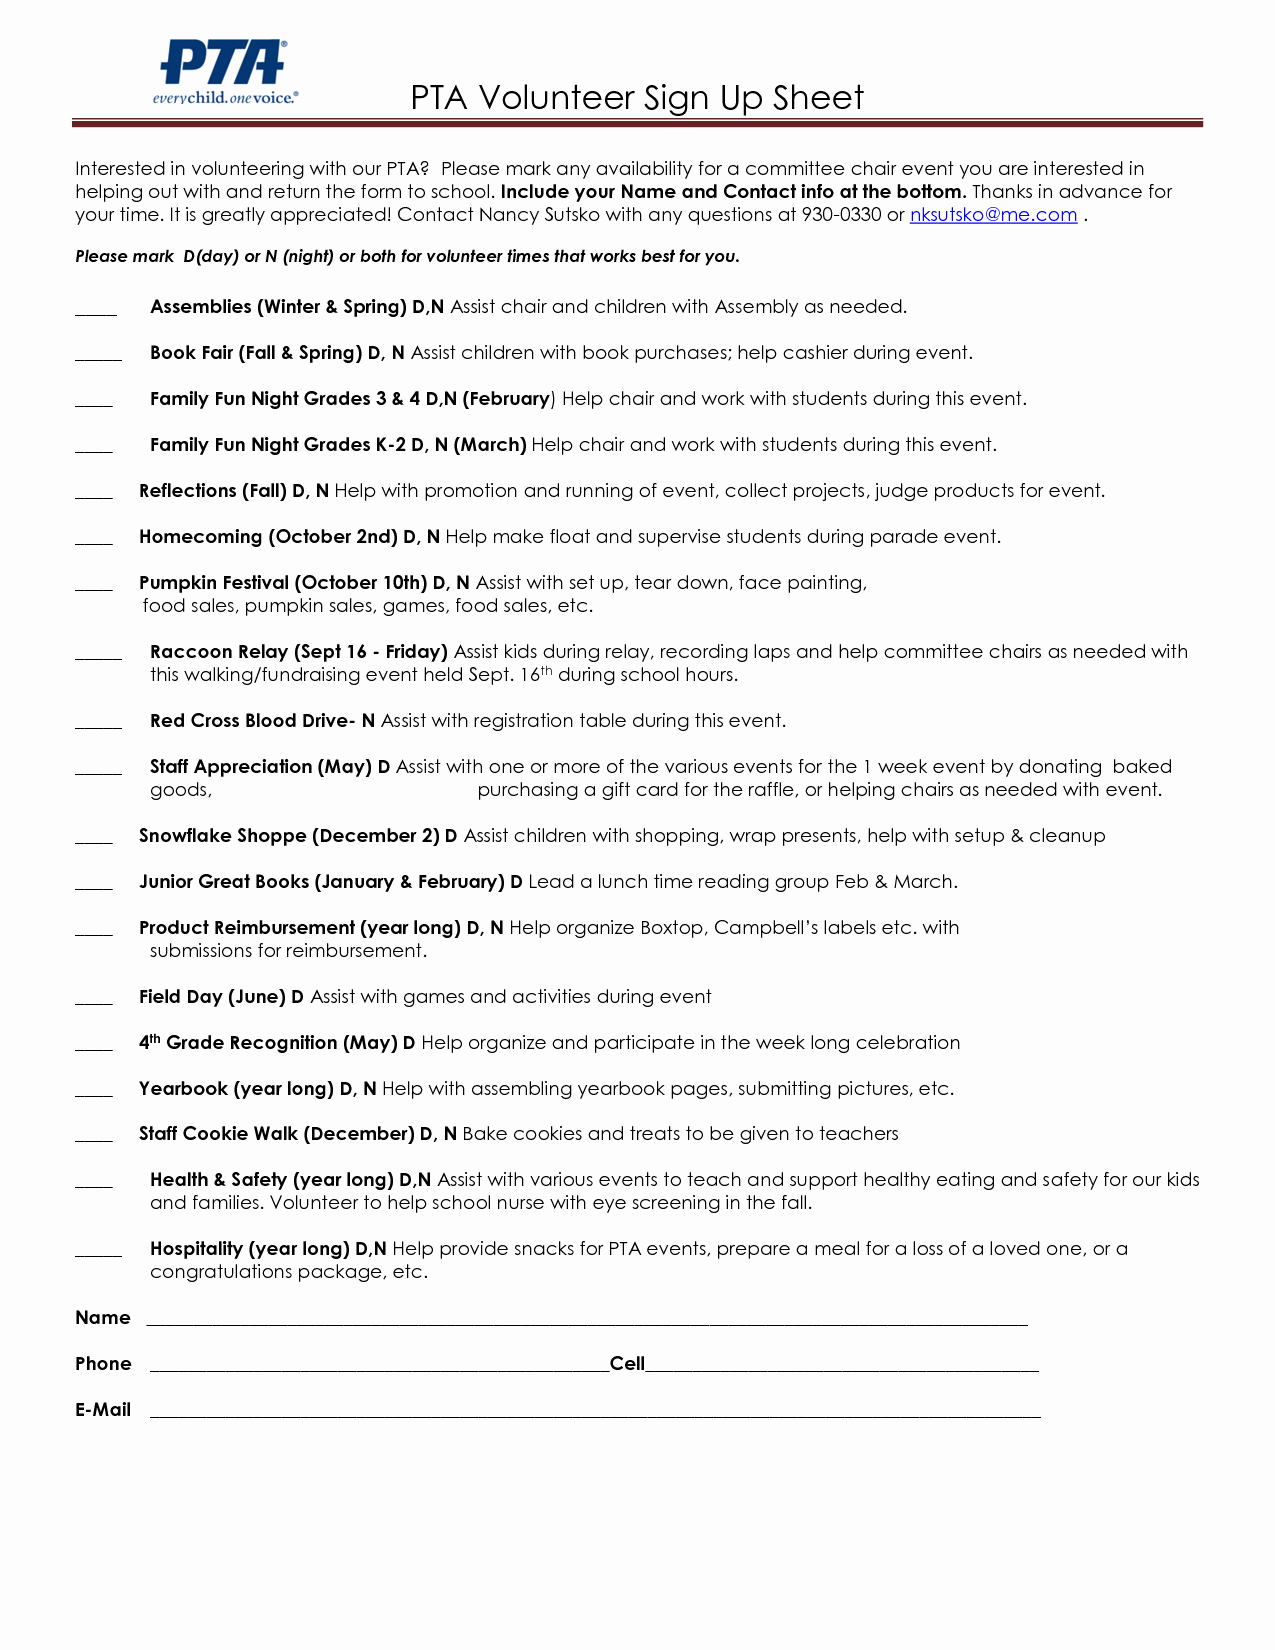 Pto Sign Up Sheet Template Inspirational Pta Volunteer Sign Up Sheets Google Search